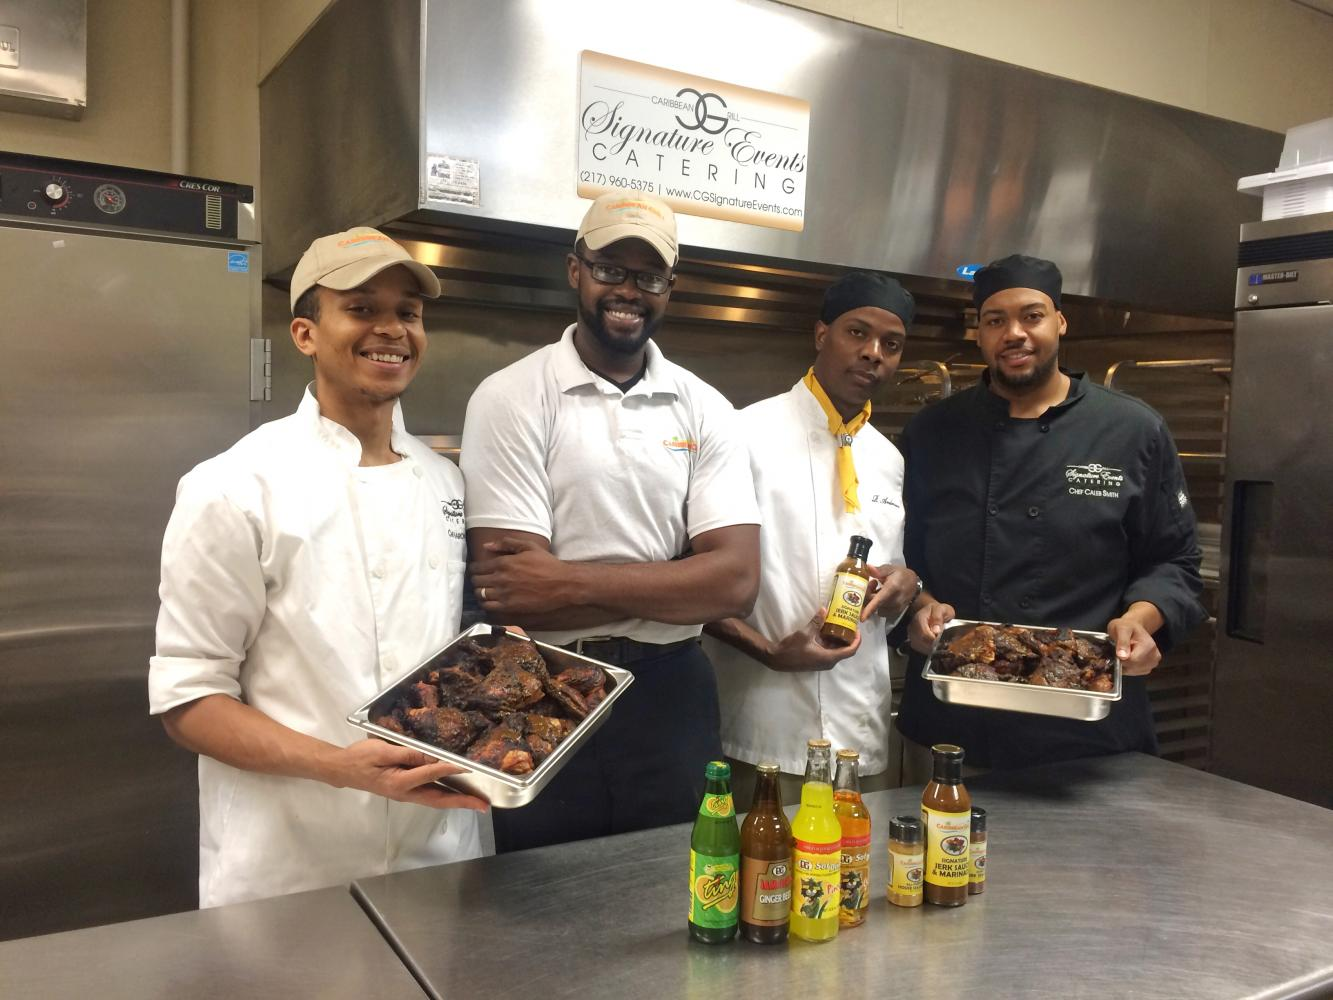 Caribbean Grill executive chef and owner Mike Harden and his culinary team prepare for their first permanent restaurant location, which is set to open Tuesday, May 30 at 2135 S Neil St., Champaign. Caribbean Grill is currently operating out of a food truck and a catering location.